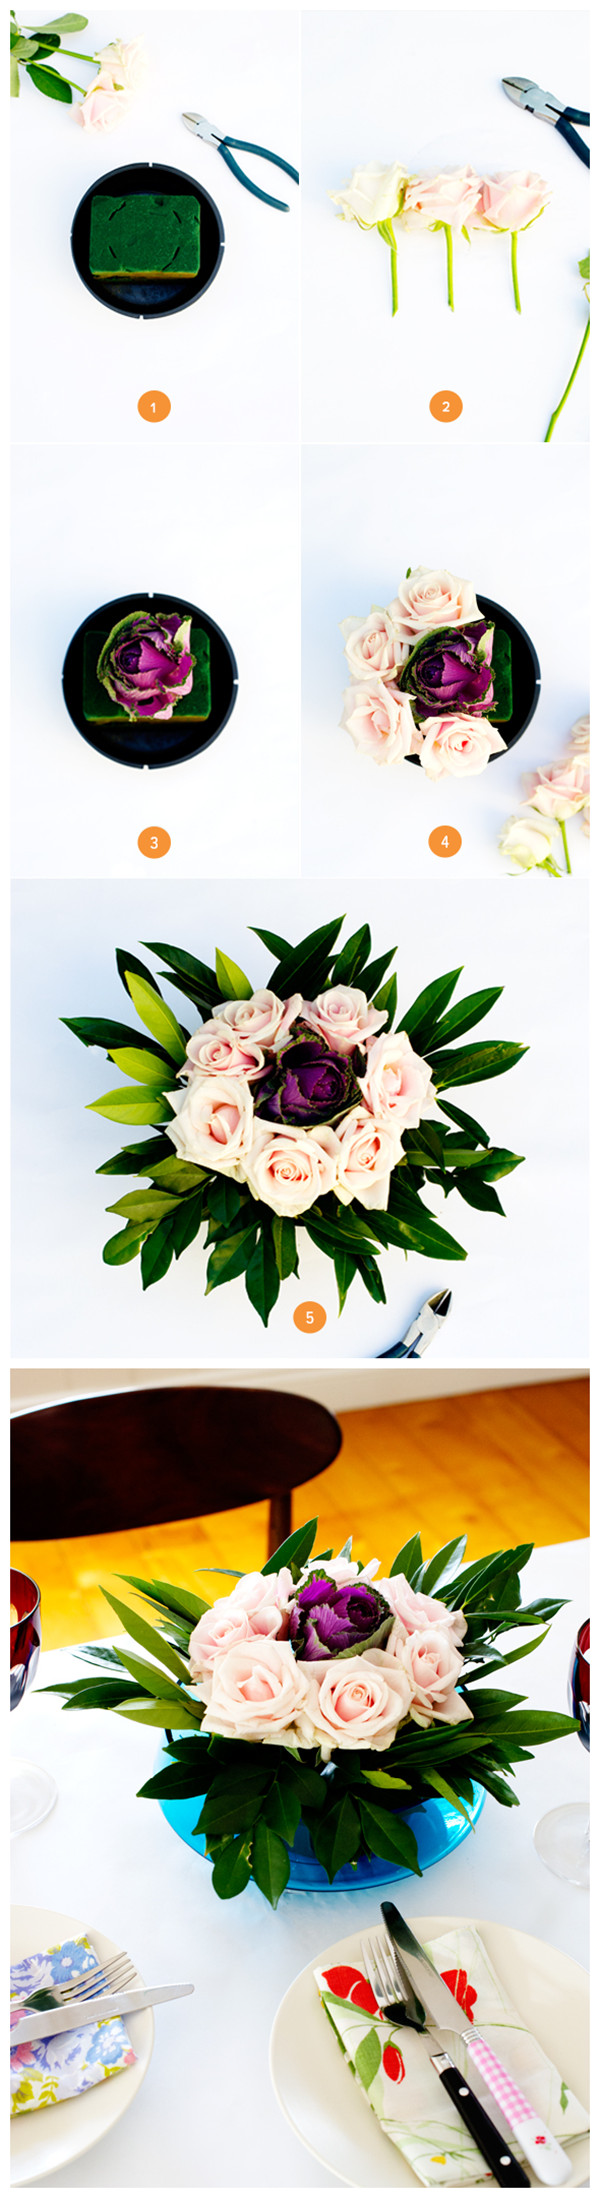 Floral Weding Centerpiece Step by Step